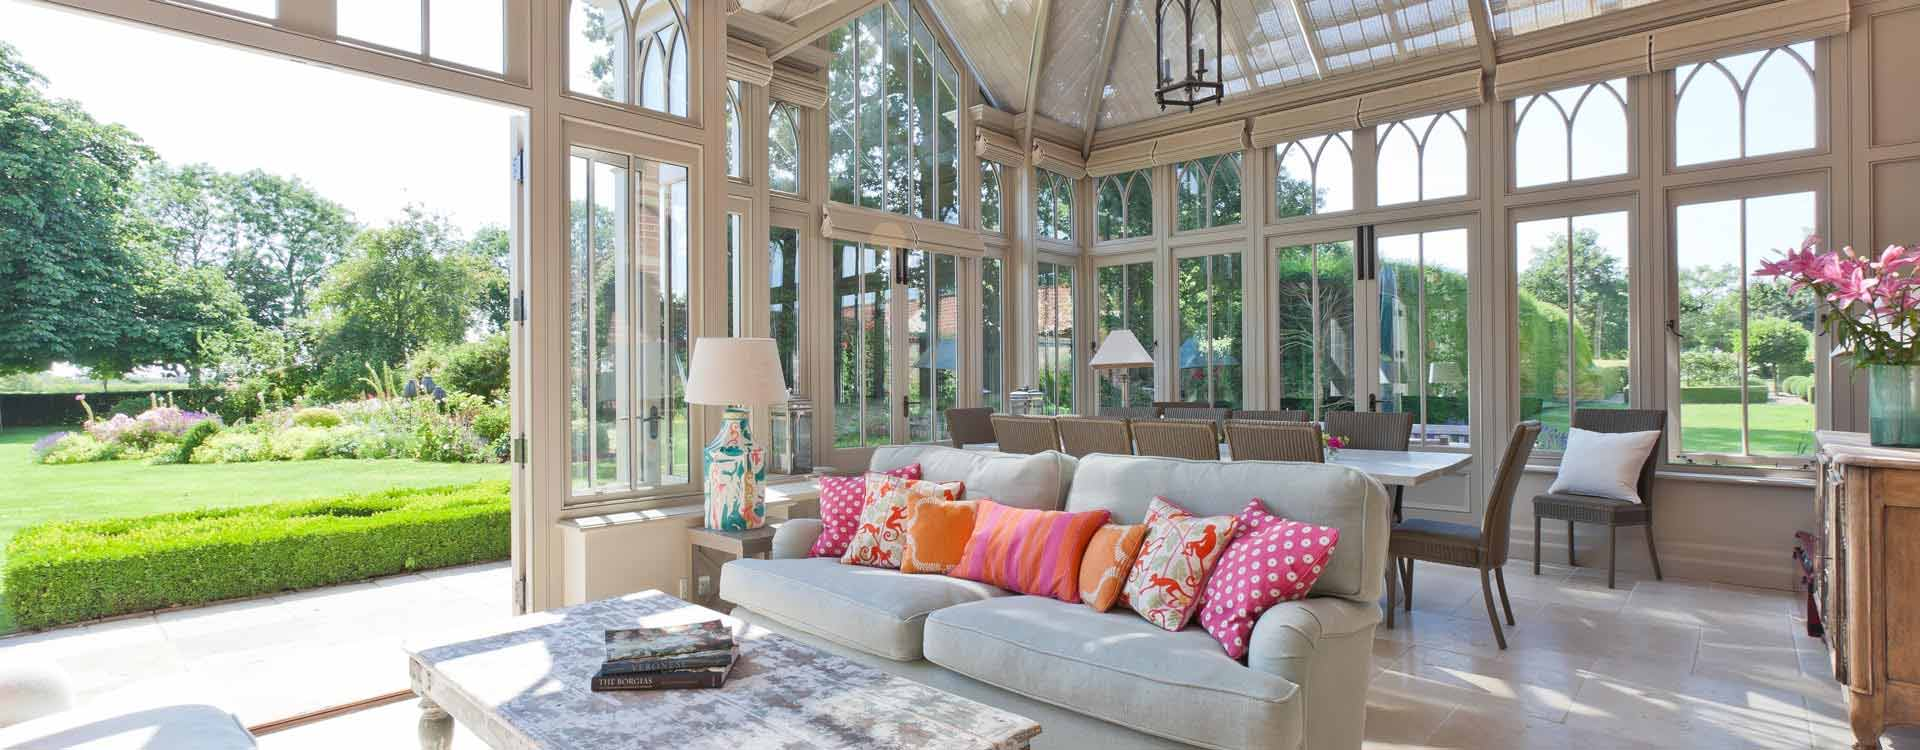 Bright, Calm and relaxing conservatory